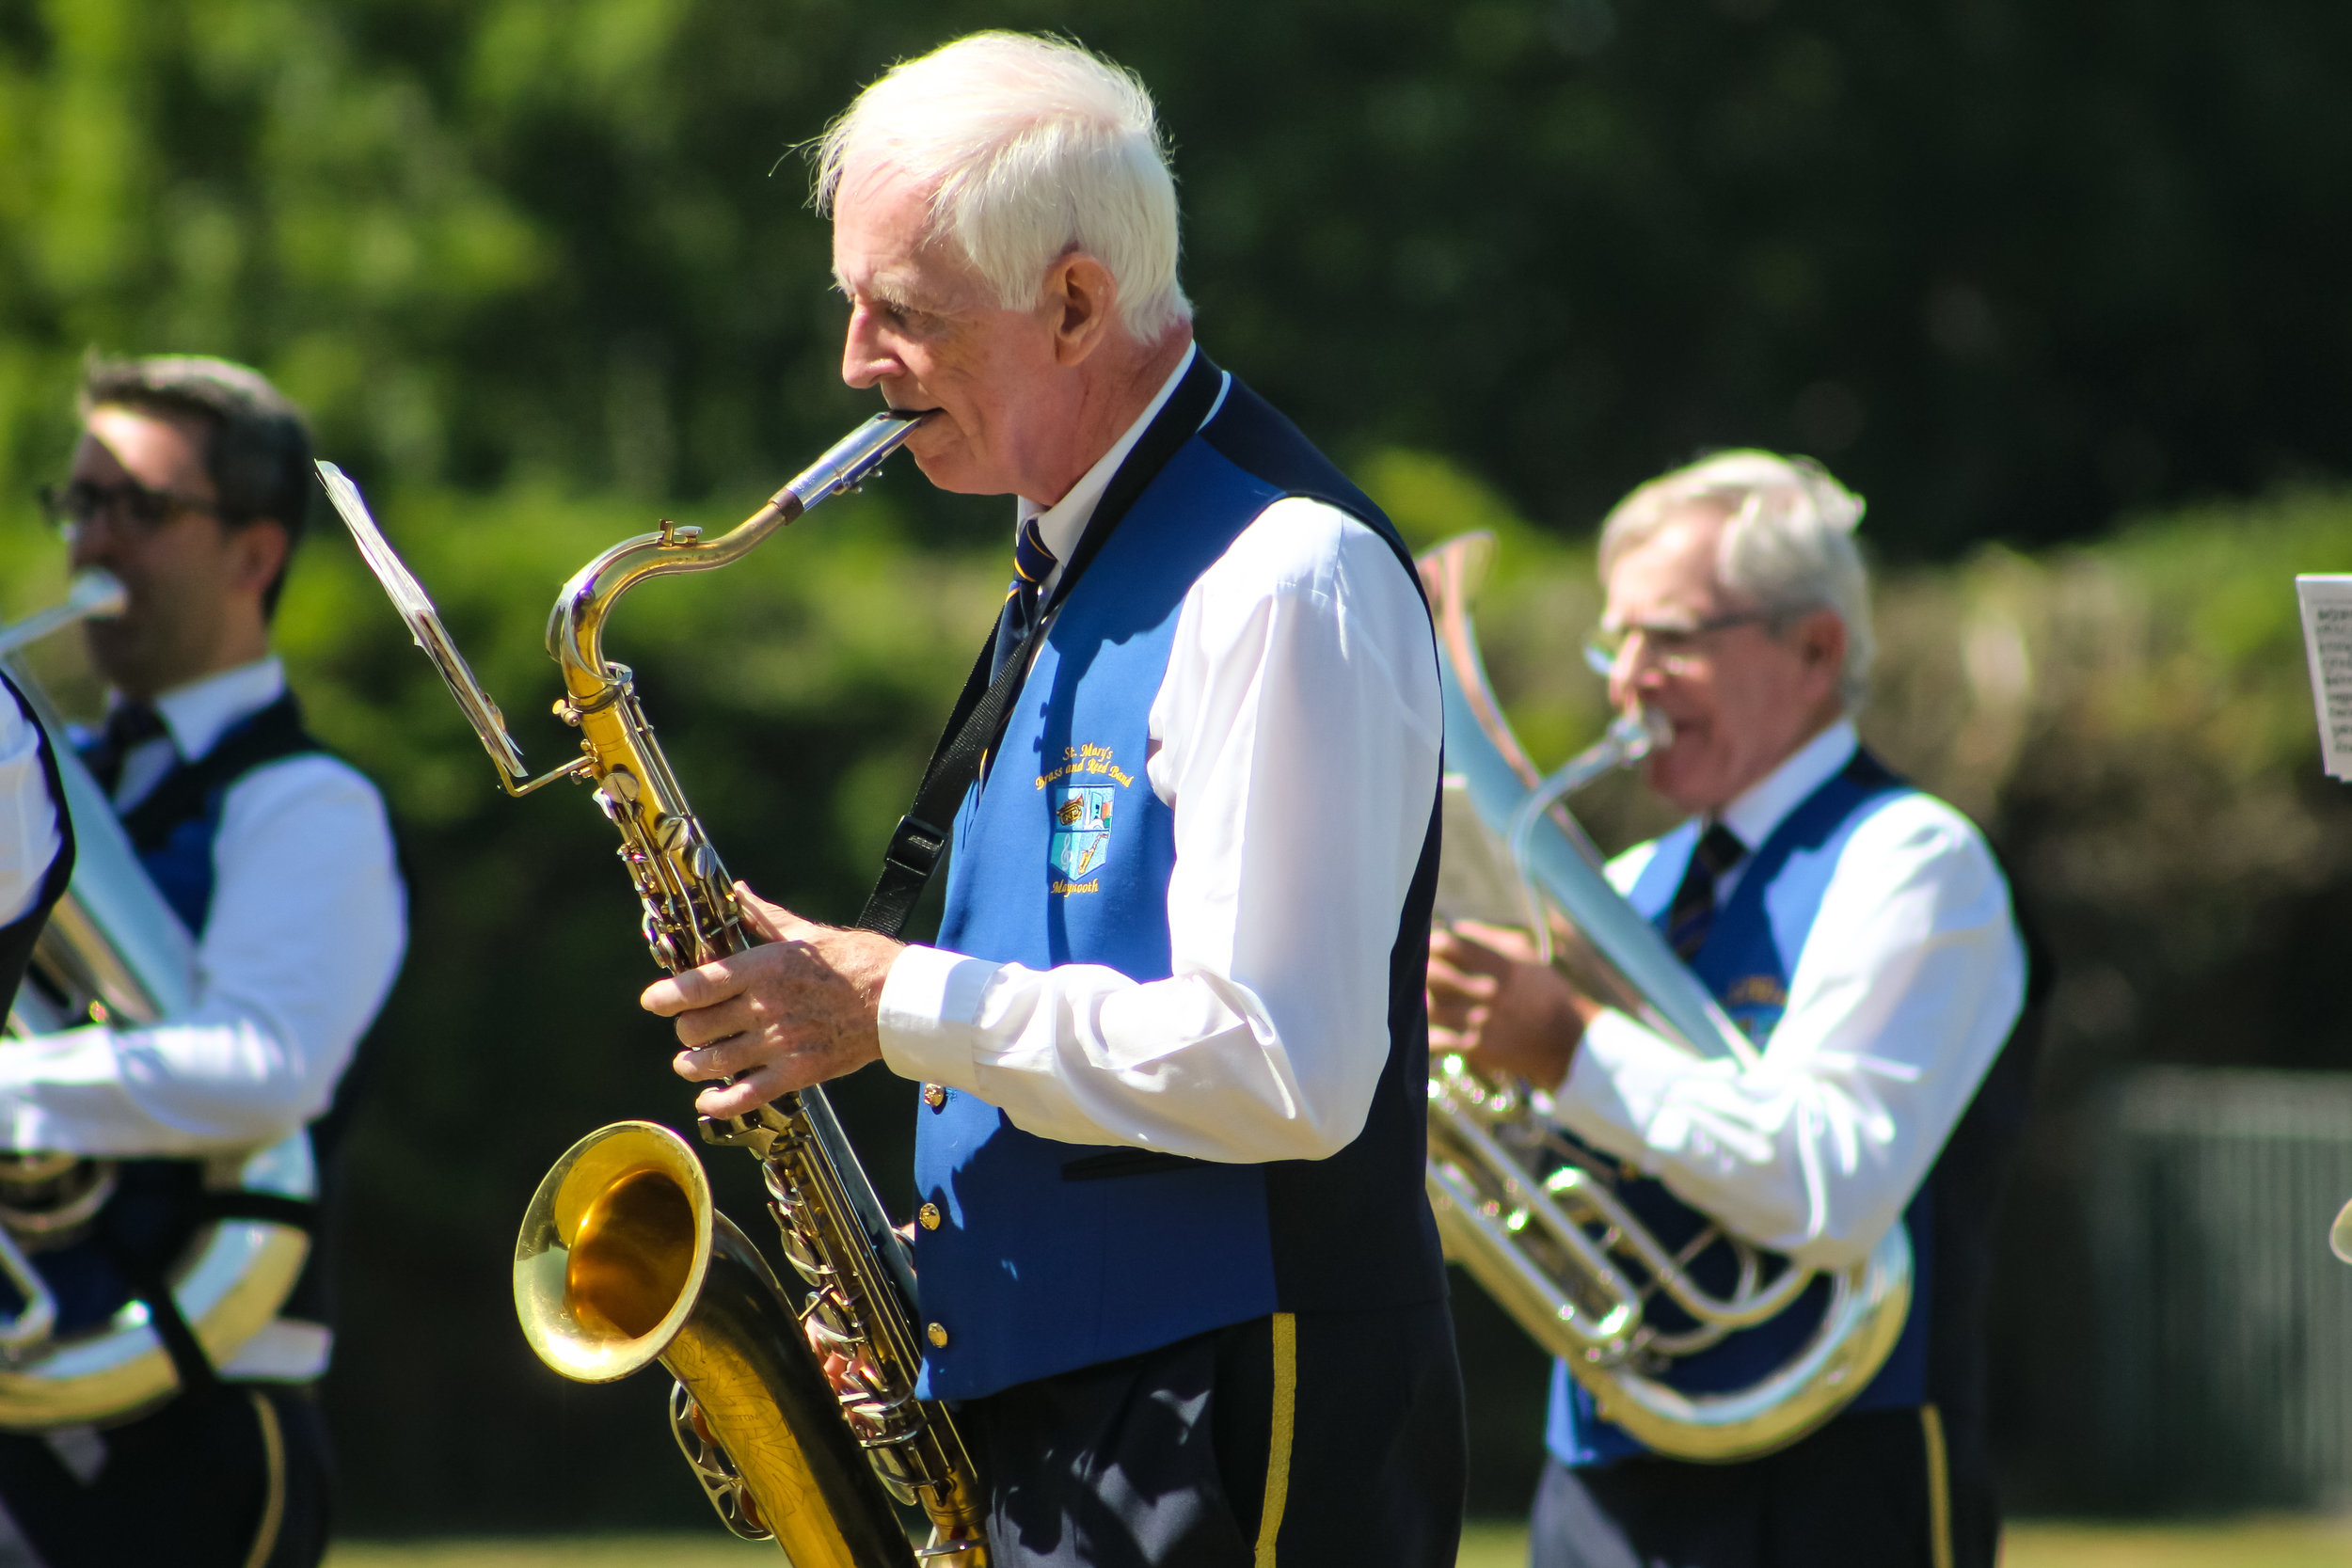 Maynooth Brass and Reed Band.jpg